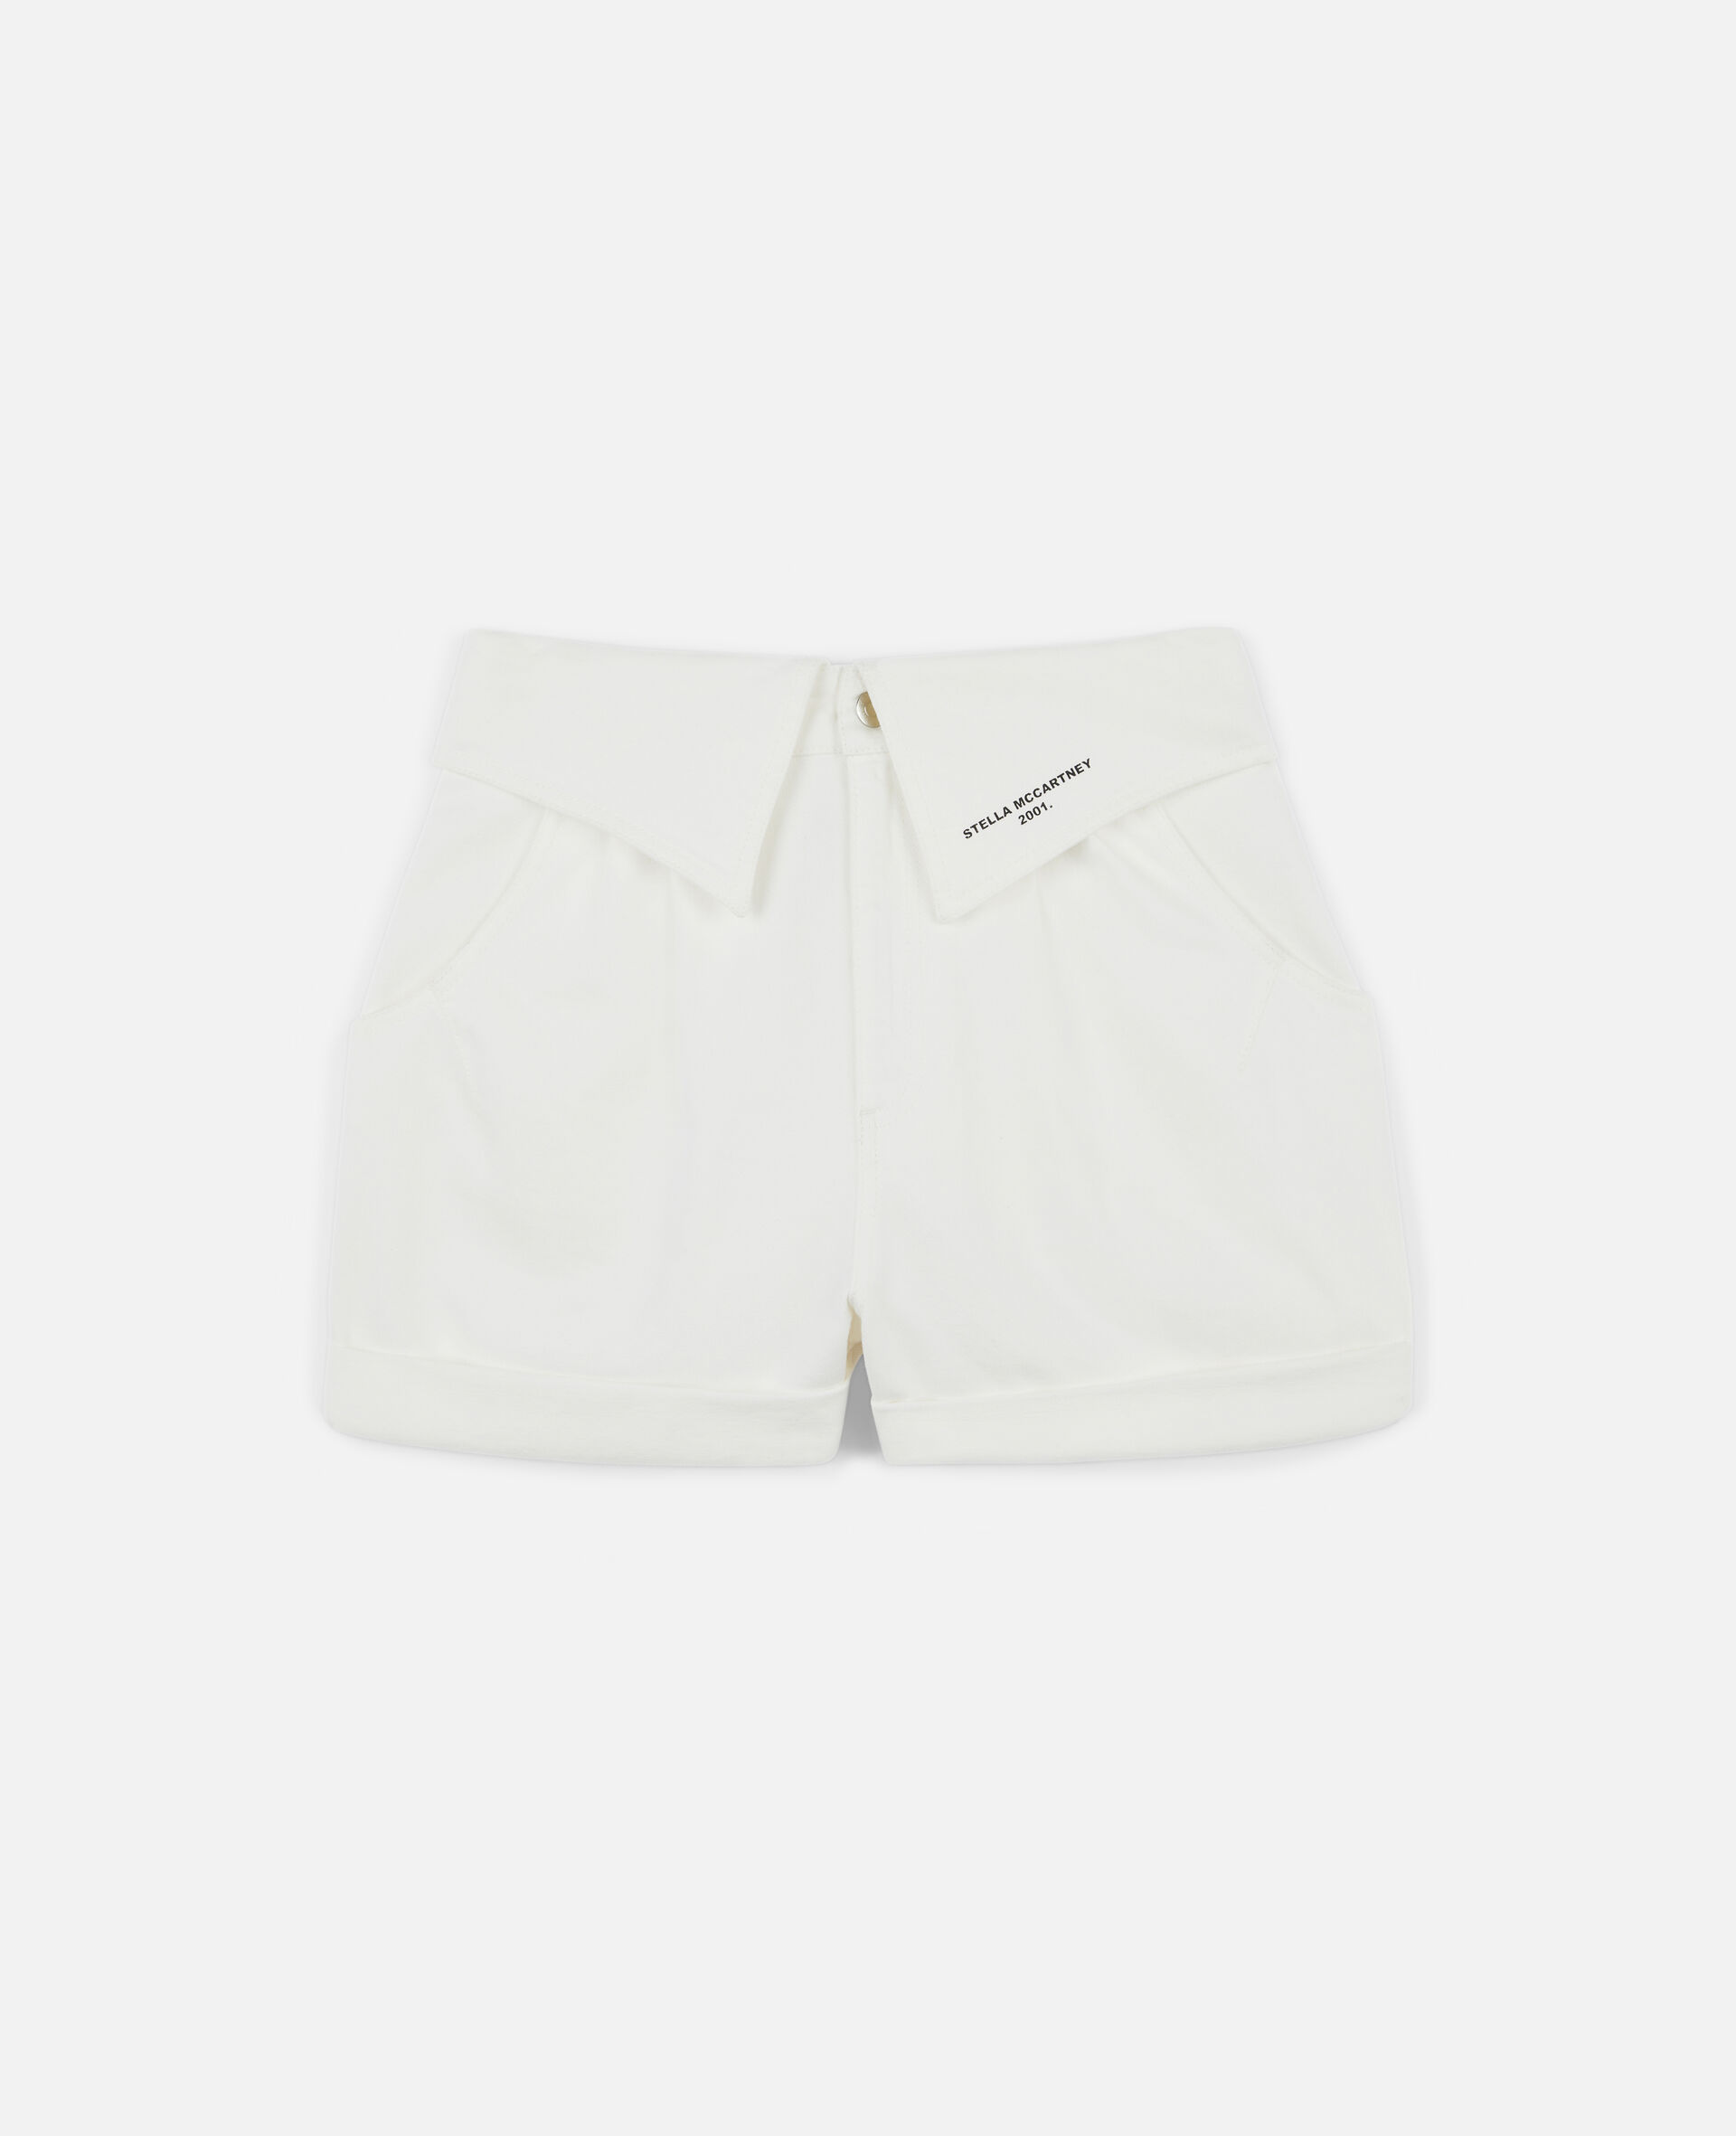 'Stella McCartney 2001.' Denim Shorts-White-large image number 0